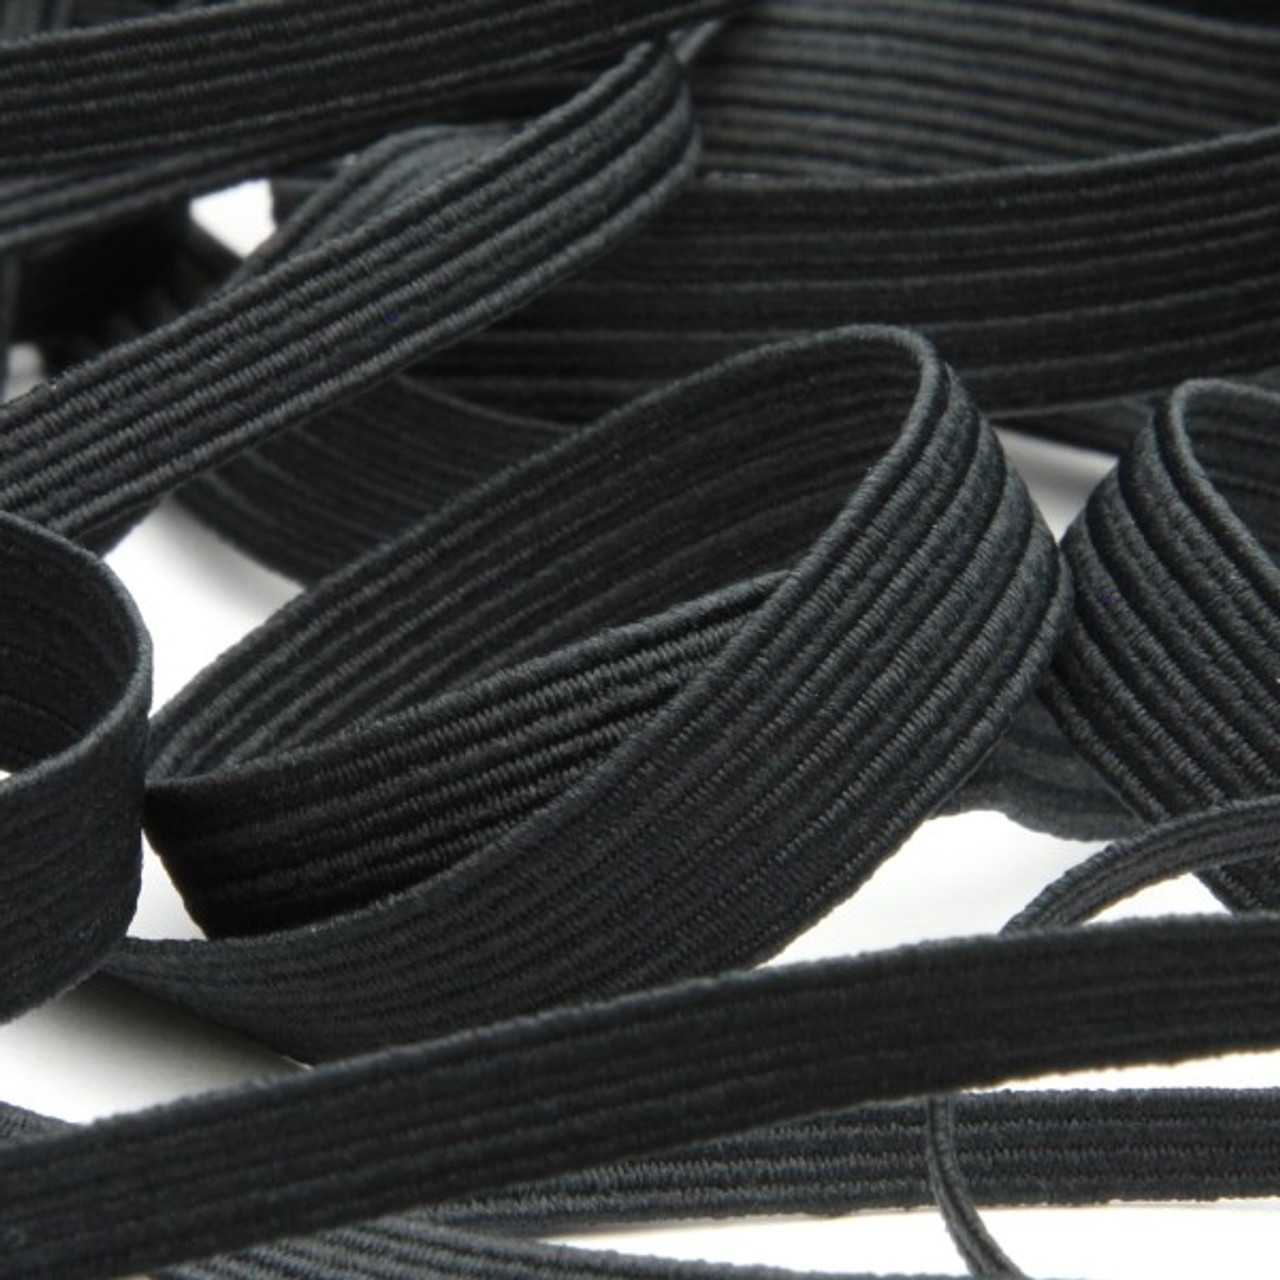 20 Yards Elastic Band For Diy Mask 1 8 3 Mm Us Stock Ready